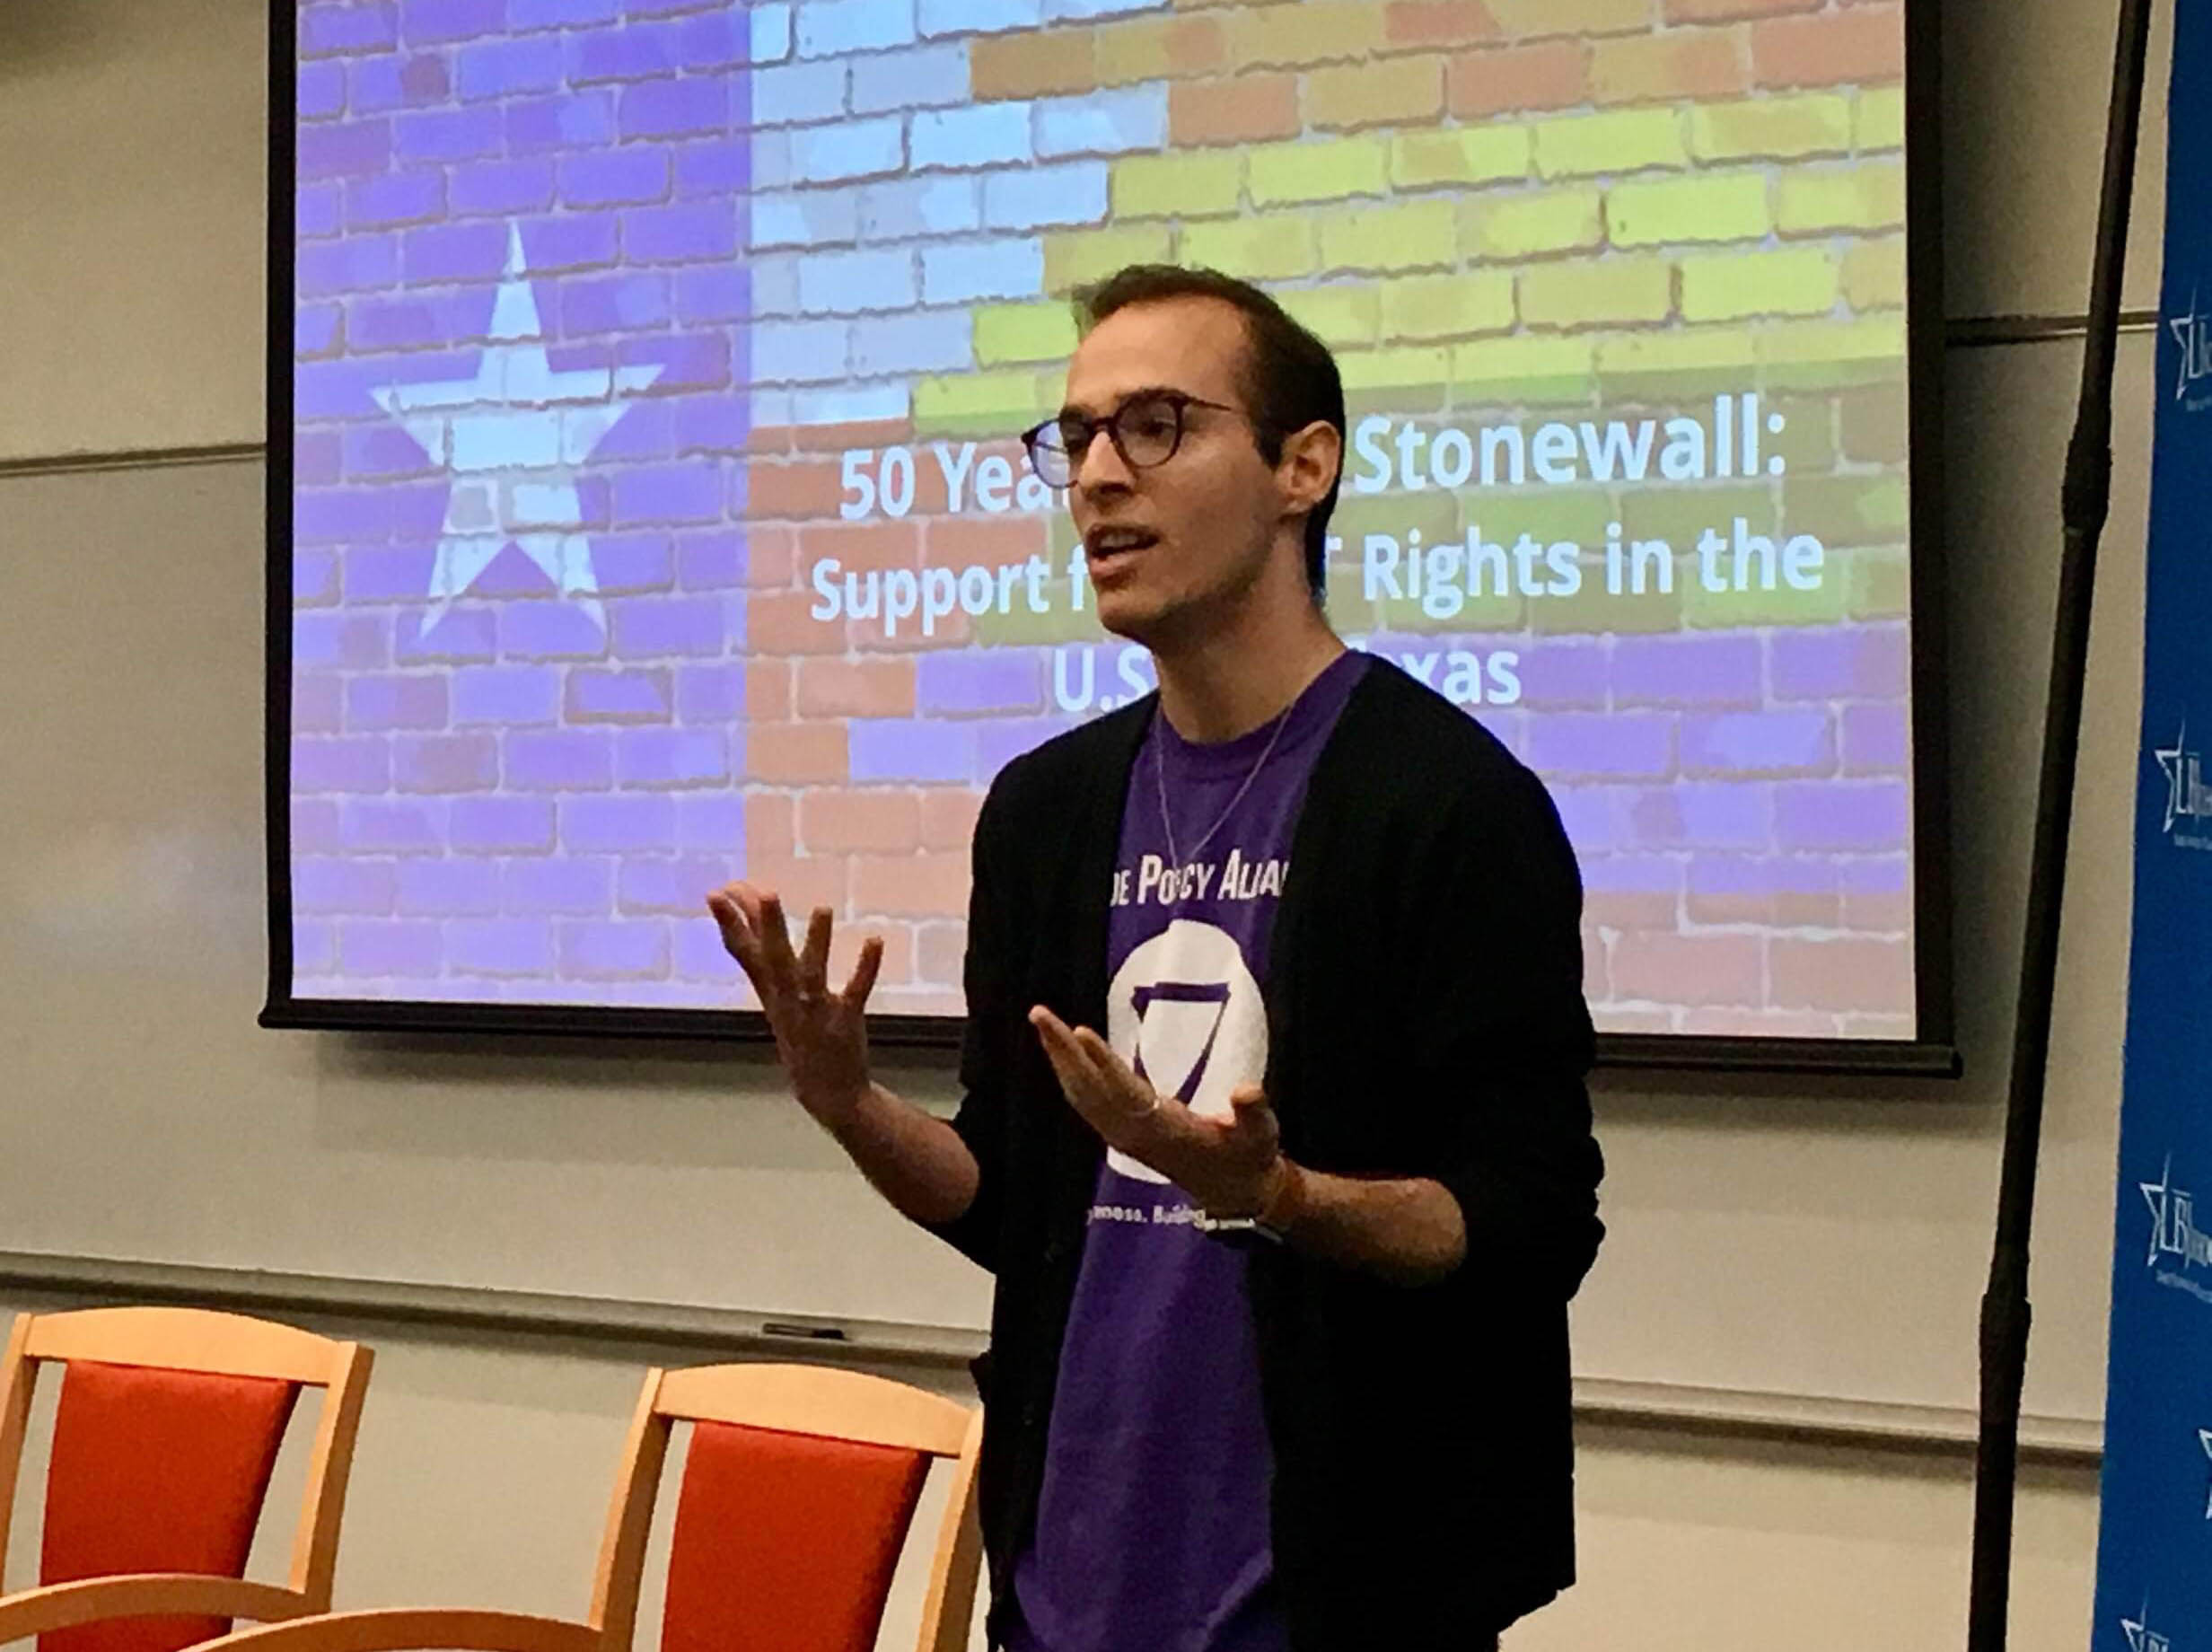 LBJ student Wayne Holstine (MPAff '19) speaks before the 50 Years After Stonewall event